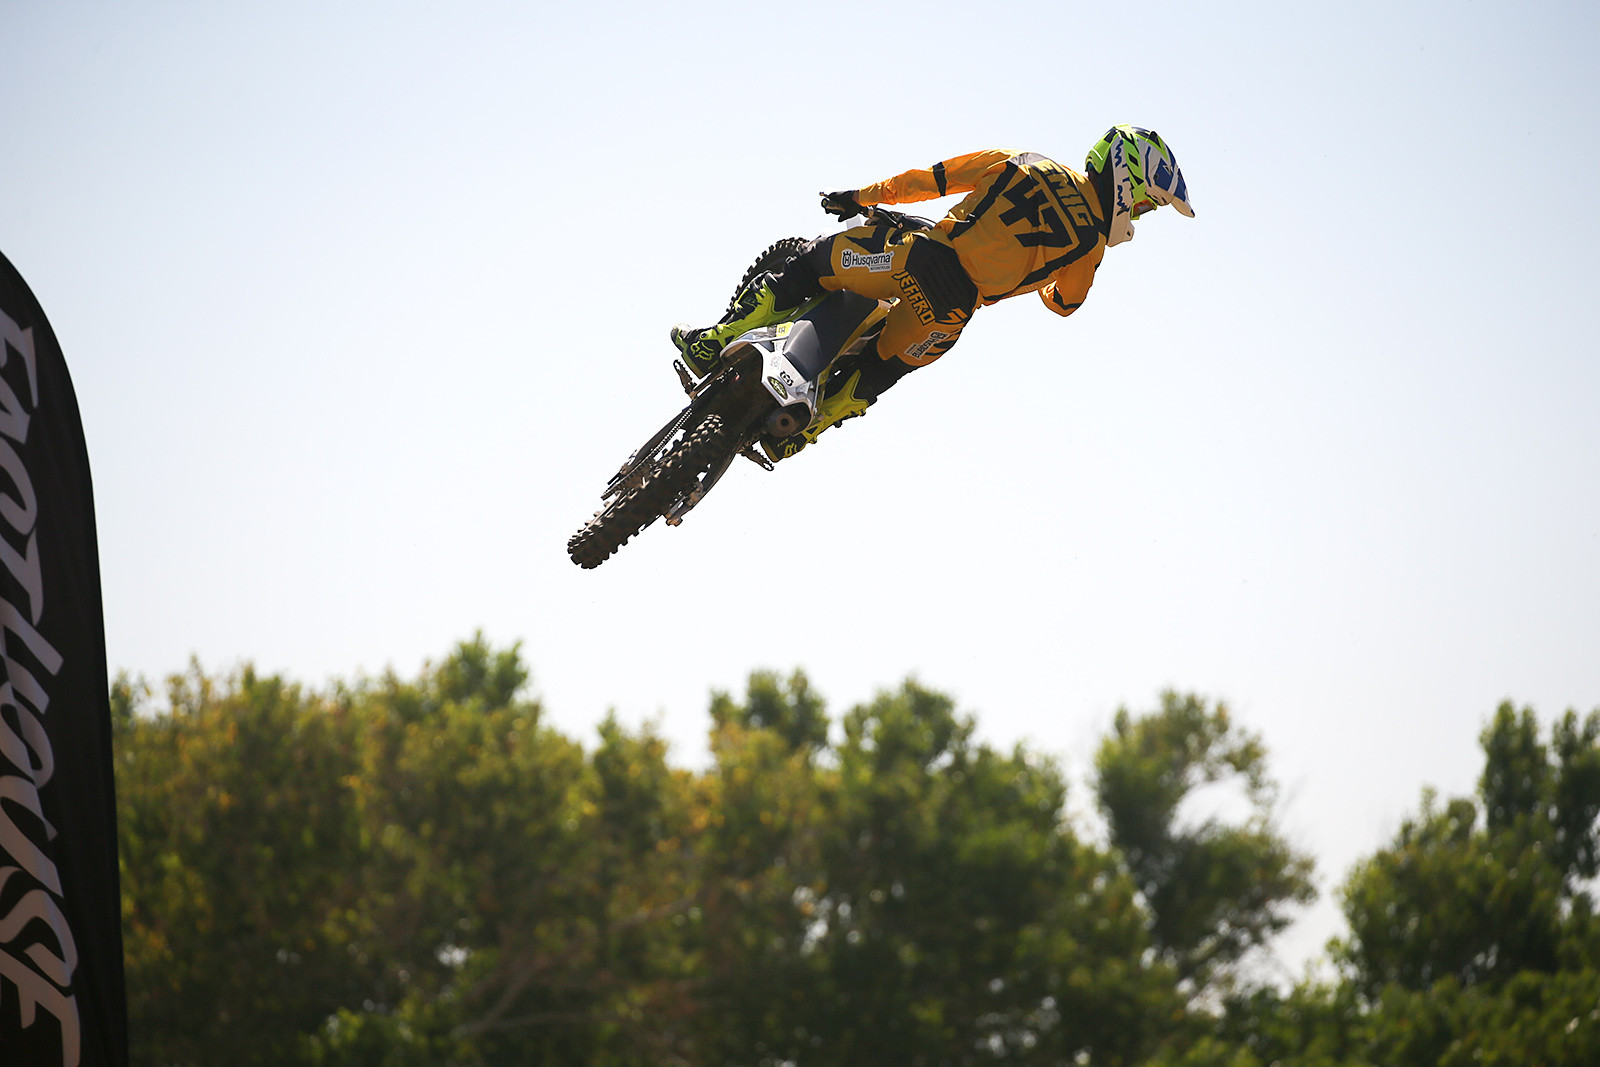 Jeff Emig brought out a Husky 150 to have fun with.